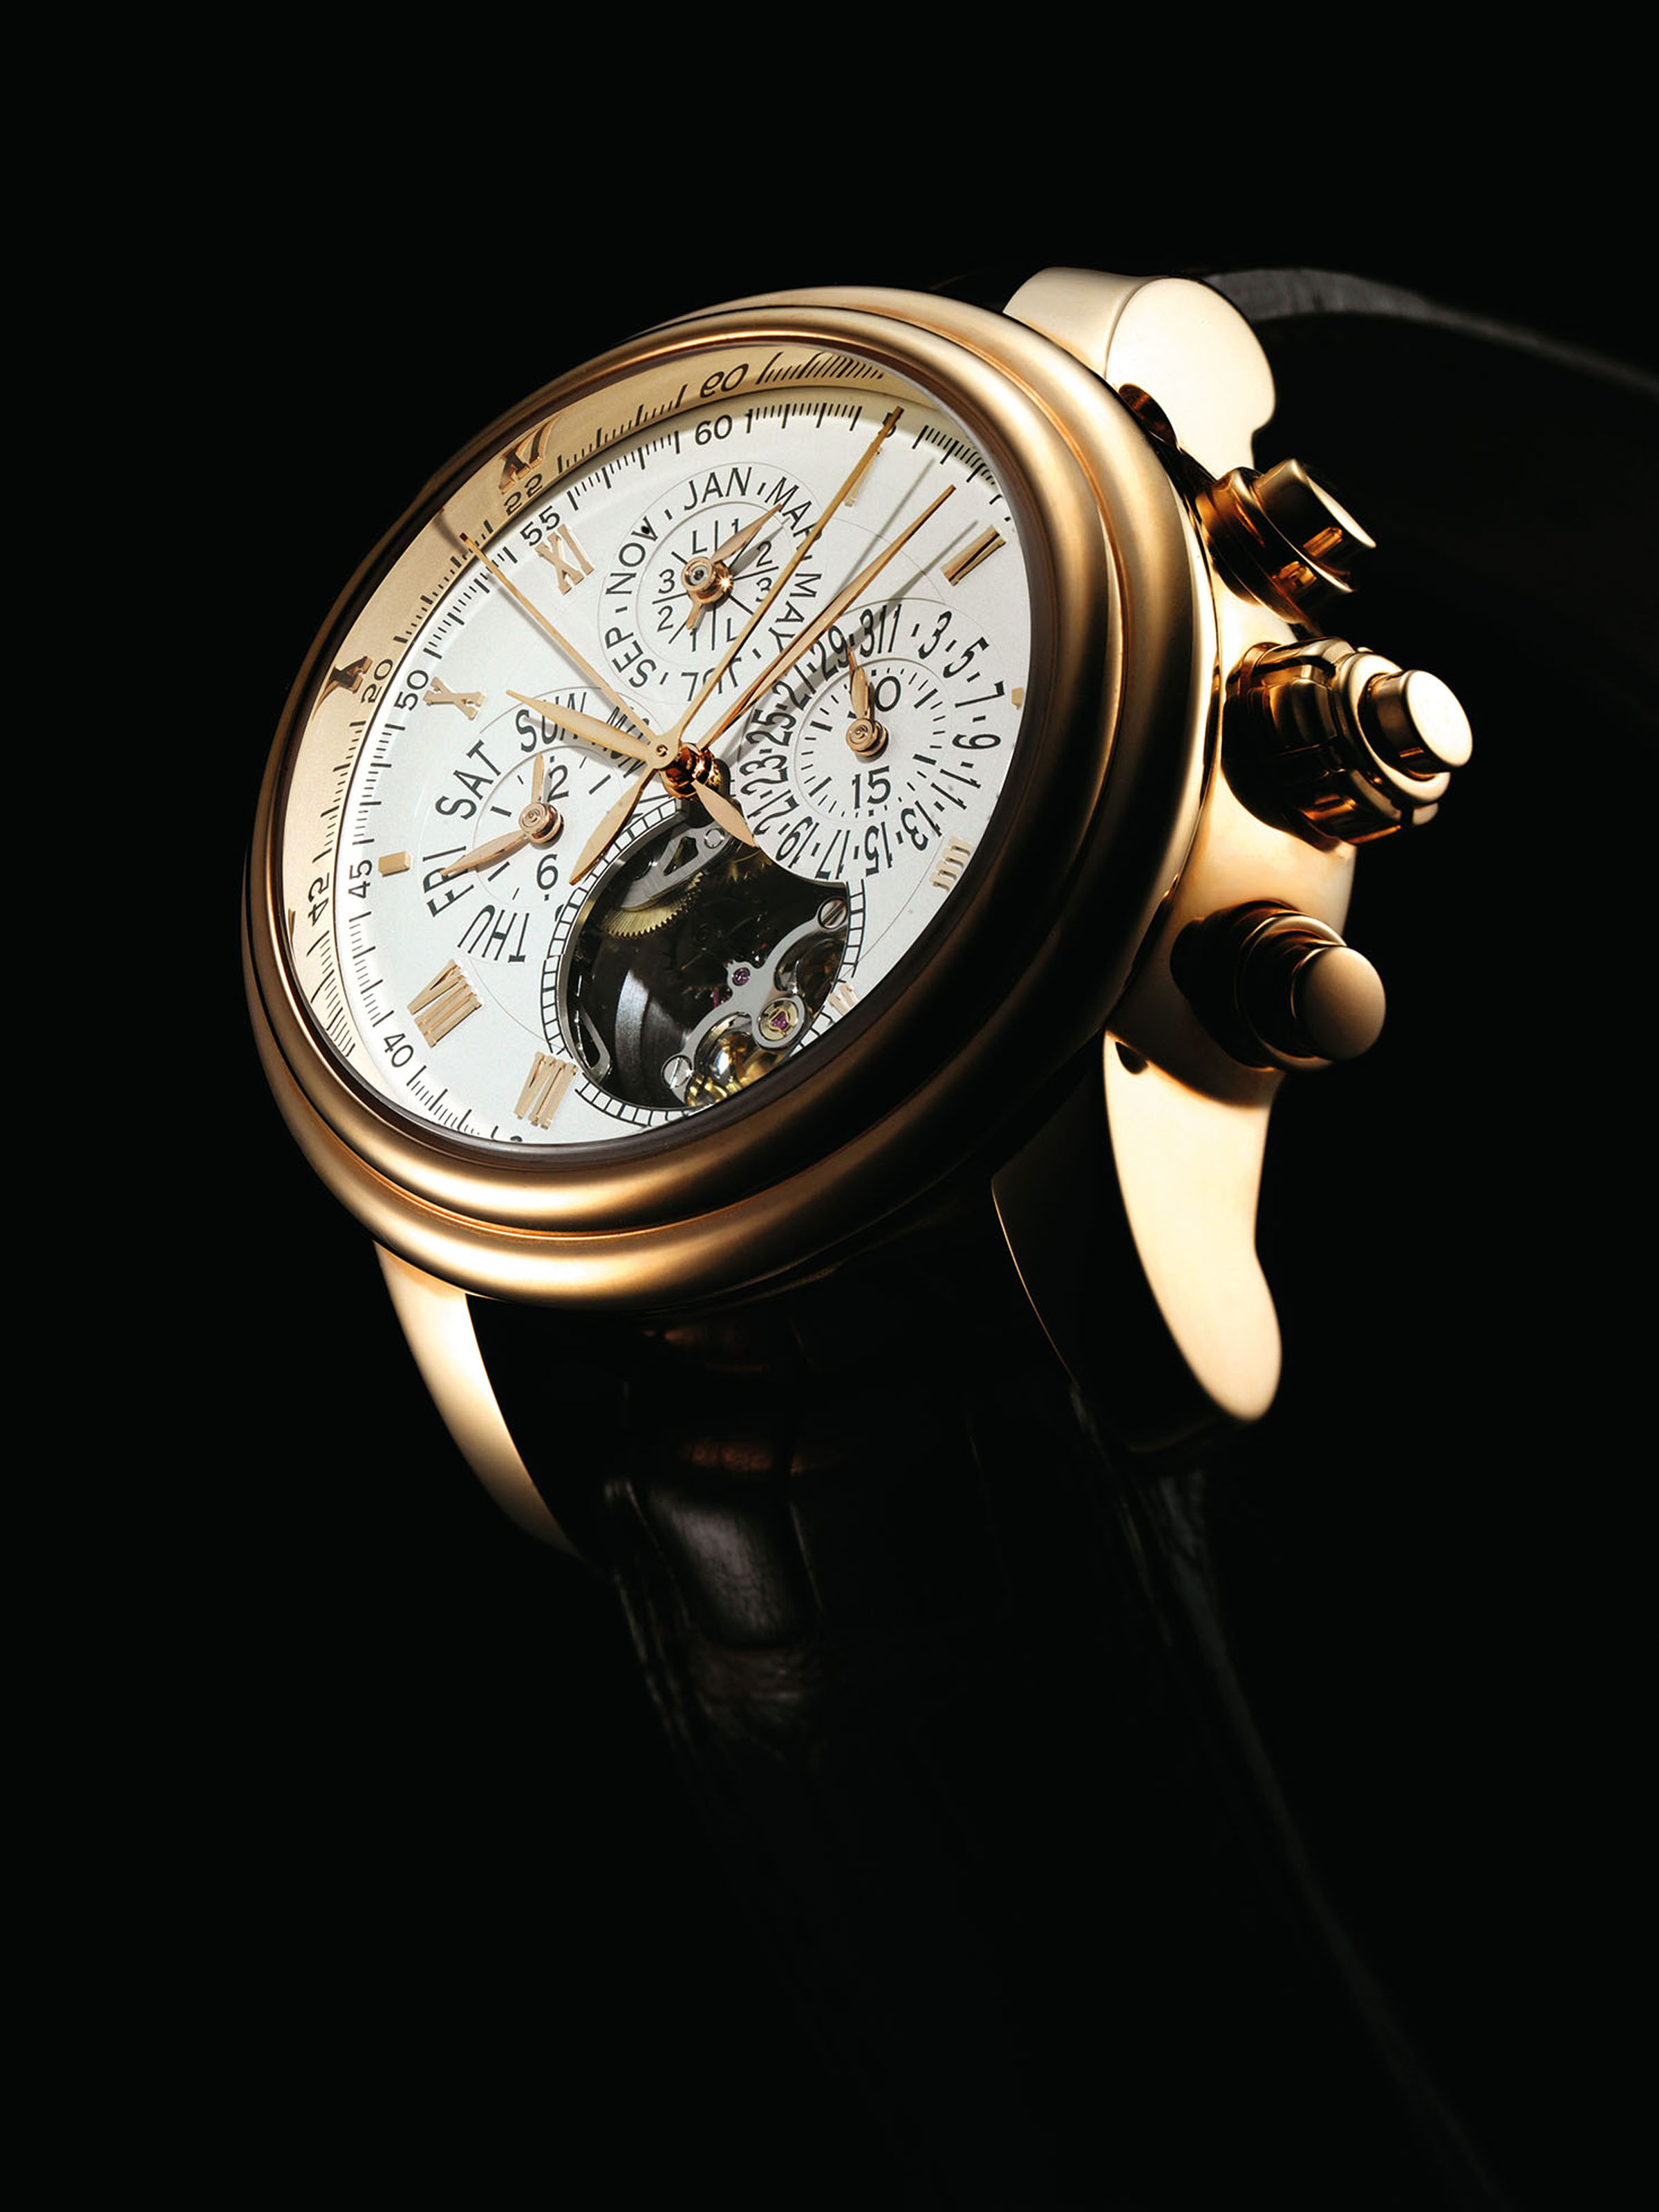 BLANCPAIN. A VERY FINE, RARE AND LARGE 18K PINK GOLD AUTOMATIC PERPETUAL CALENDAR SPLIT SECONDS FLYBACK CHRONOGRAPH TOURBILLON WRISTWATCH WITH LEAP YEAR INDICATION